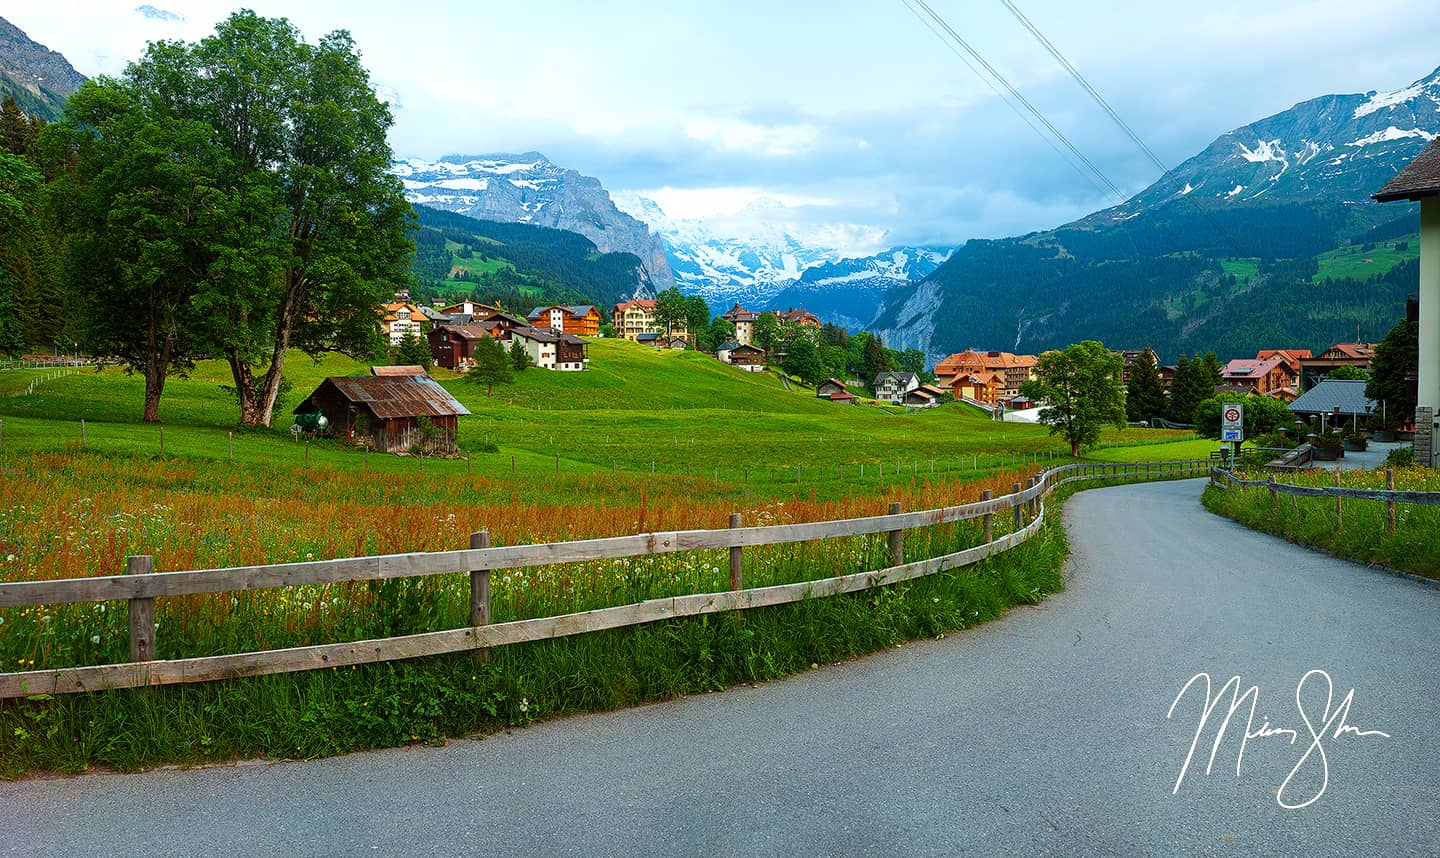 Fields Of Wengen - Wengen, Bernese Alps, Switzerland